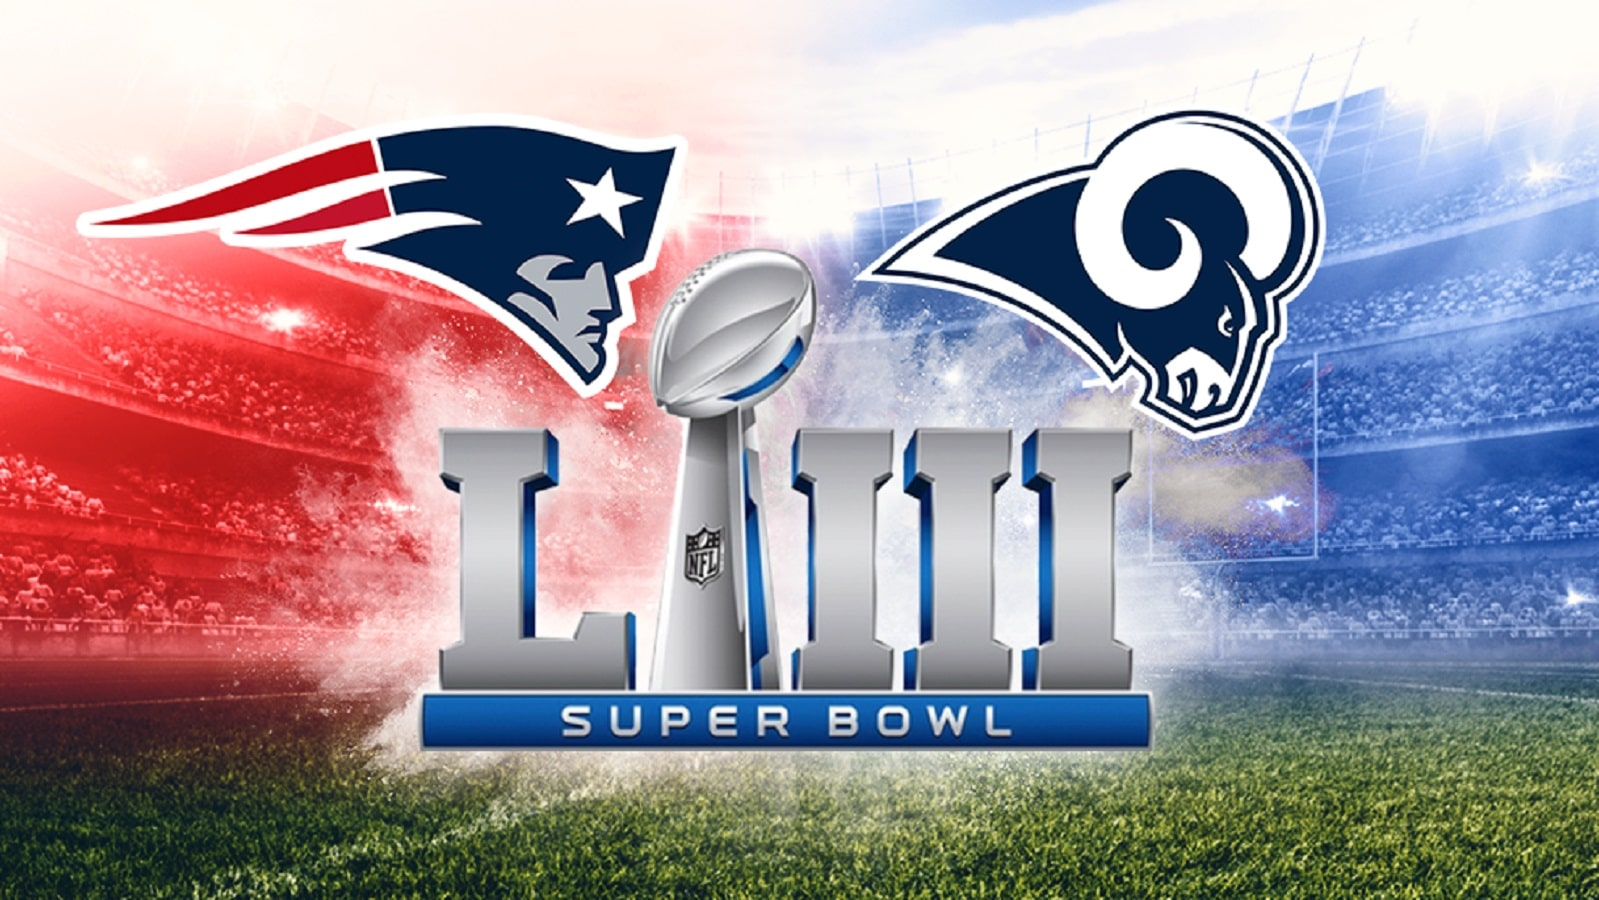 How To Stream Super Bowl Liii Online For Free In February 2019